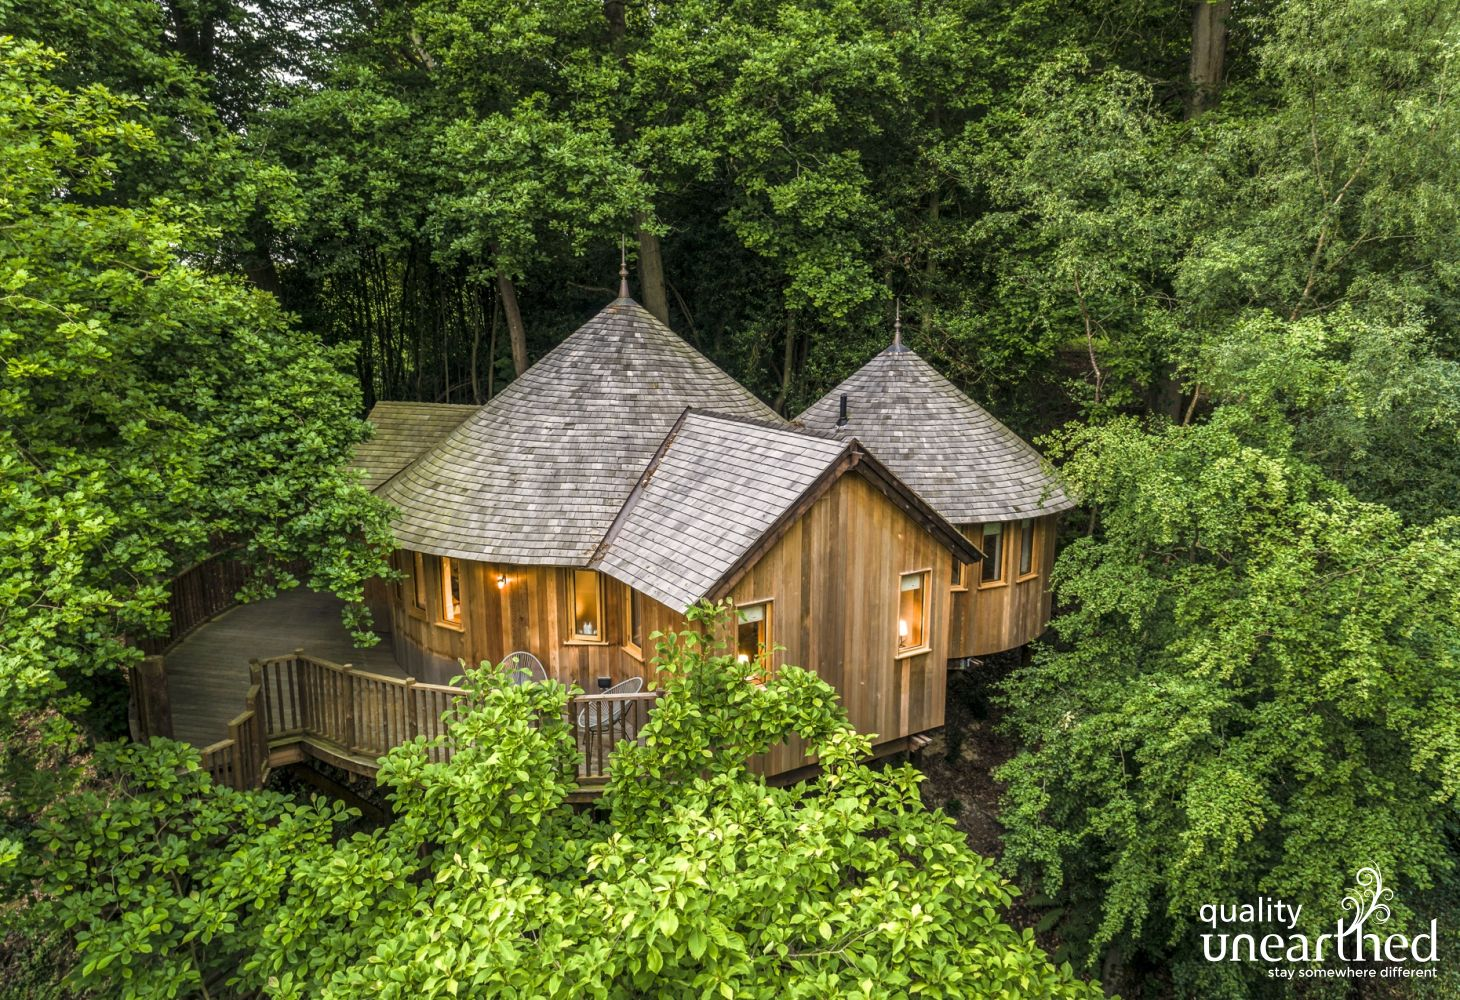 The cedar clad treehouse looks like a 5 star haven in the middle of the Sussex woodland